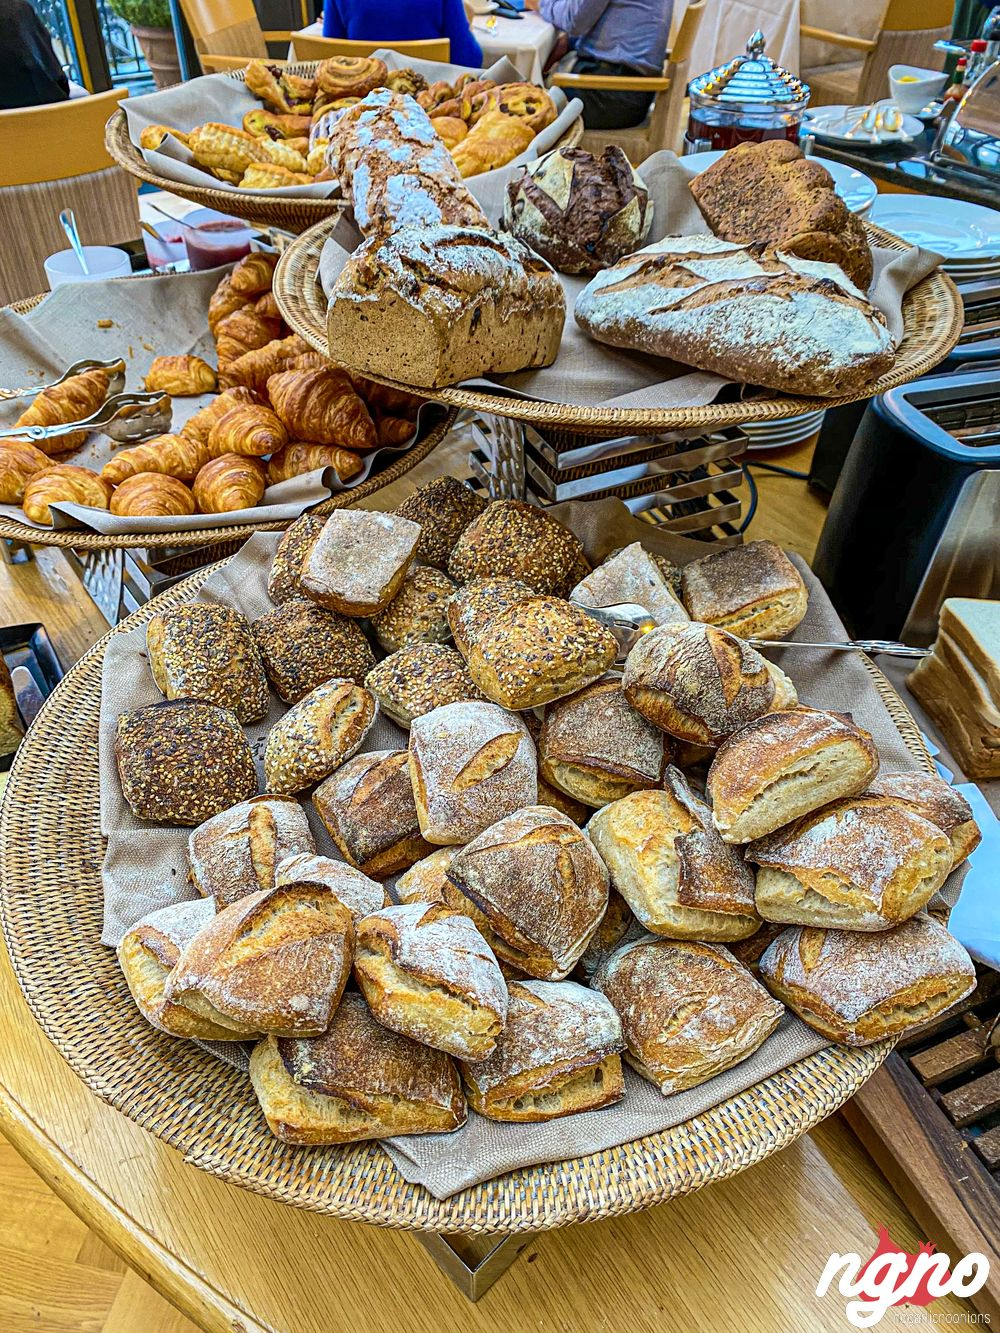 montreux-palace-fairmont-hotel-breakfast-nogarlicnoonions-632019-11-22-02-42-52